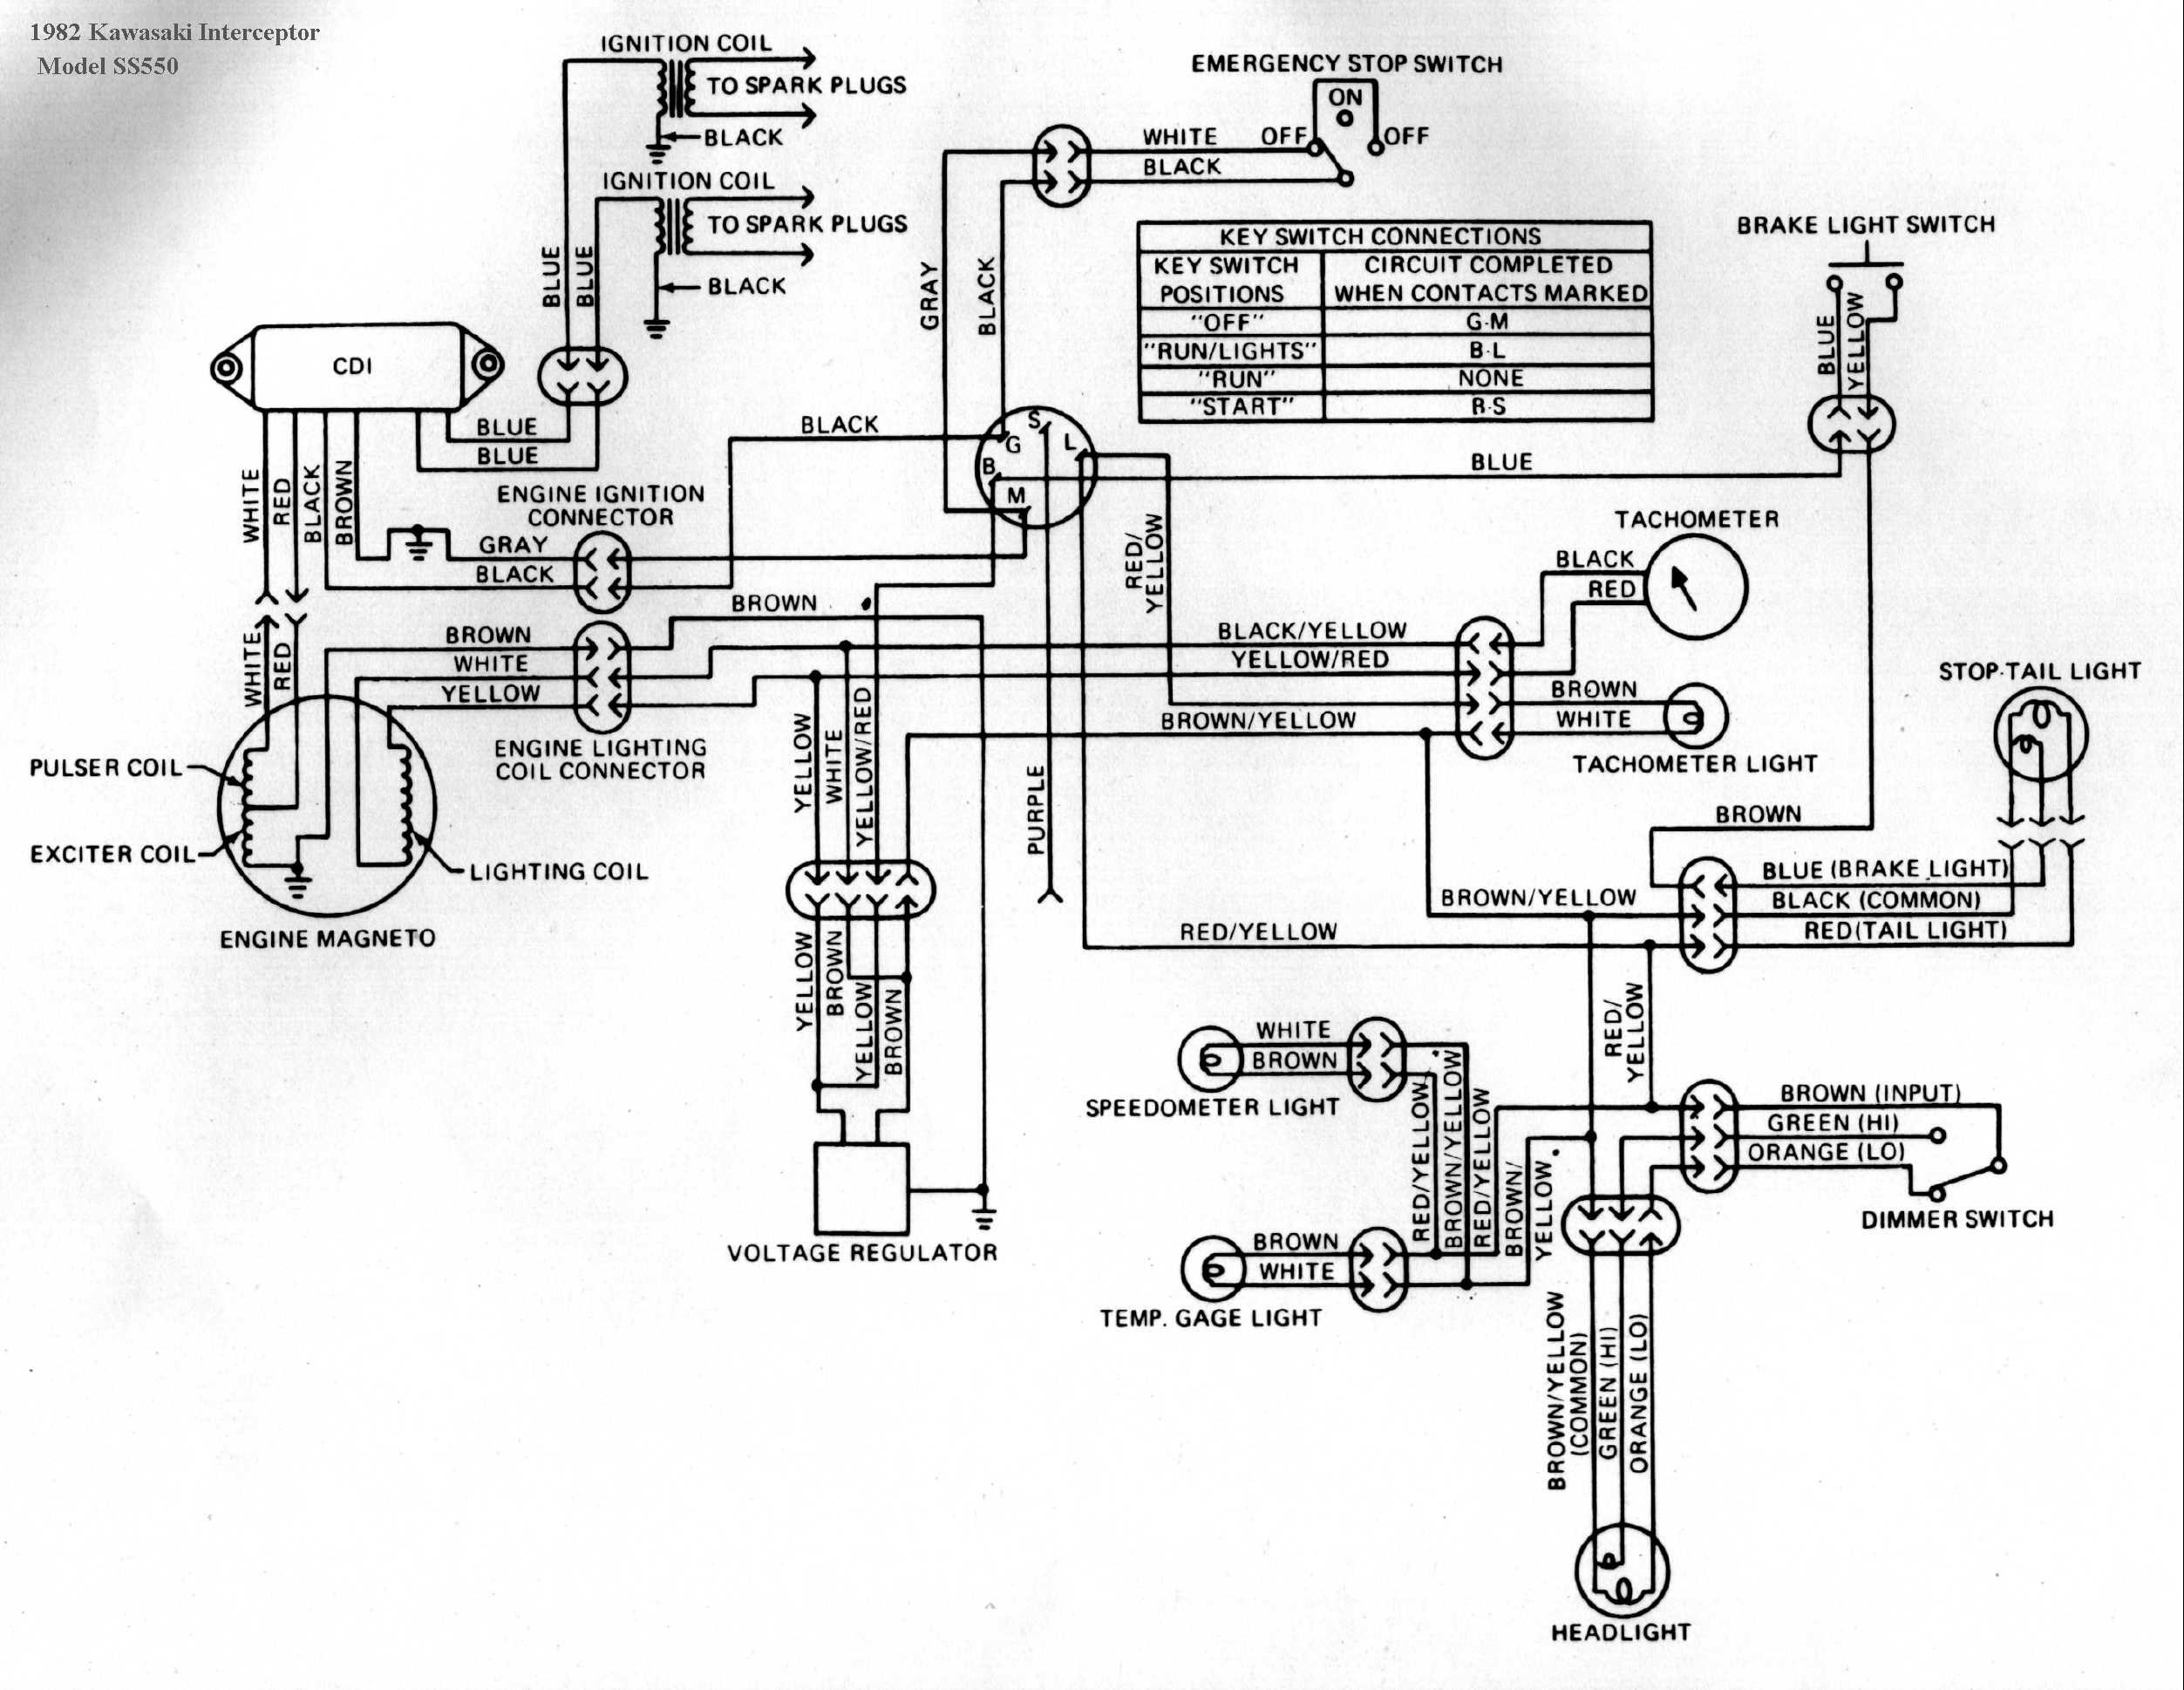 ss550 ex500 wiring diagram help ez wiring harness diagrams \u2022 free wiring 1994 kawasaki bayou 220 wiring diagram at cos-gaming.co